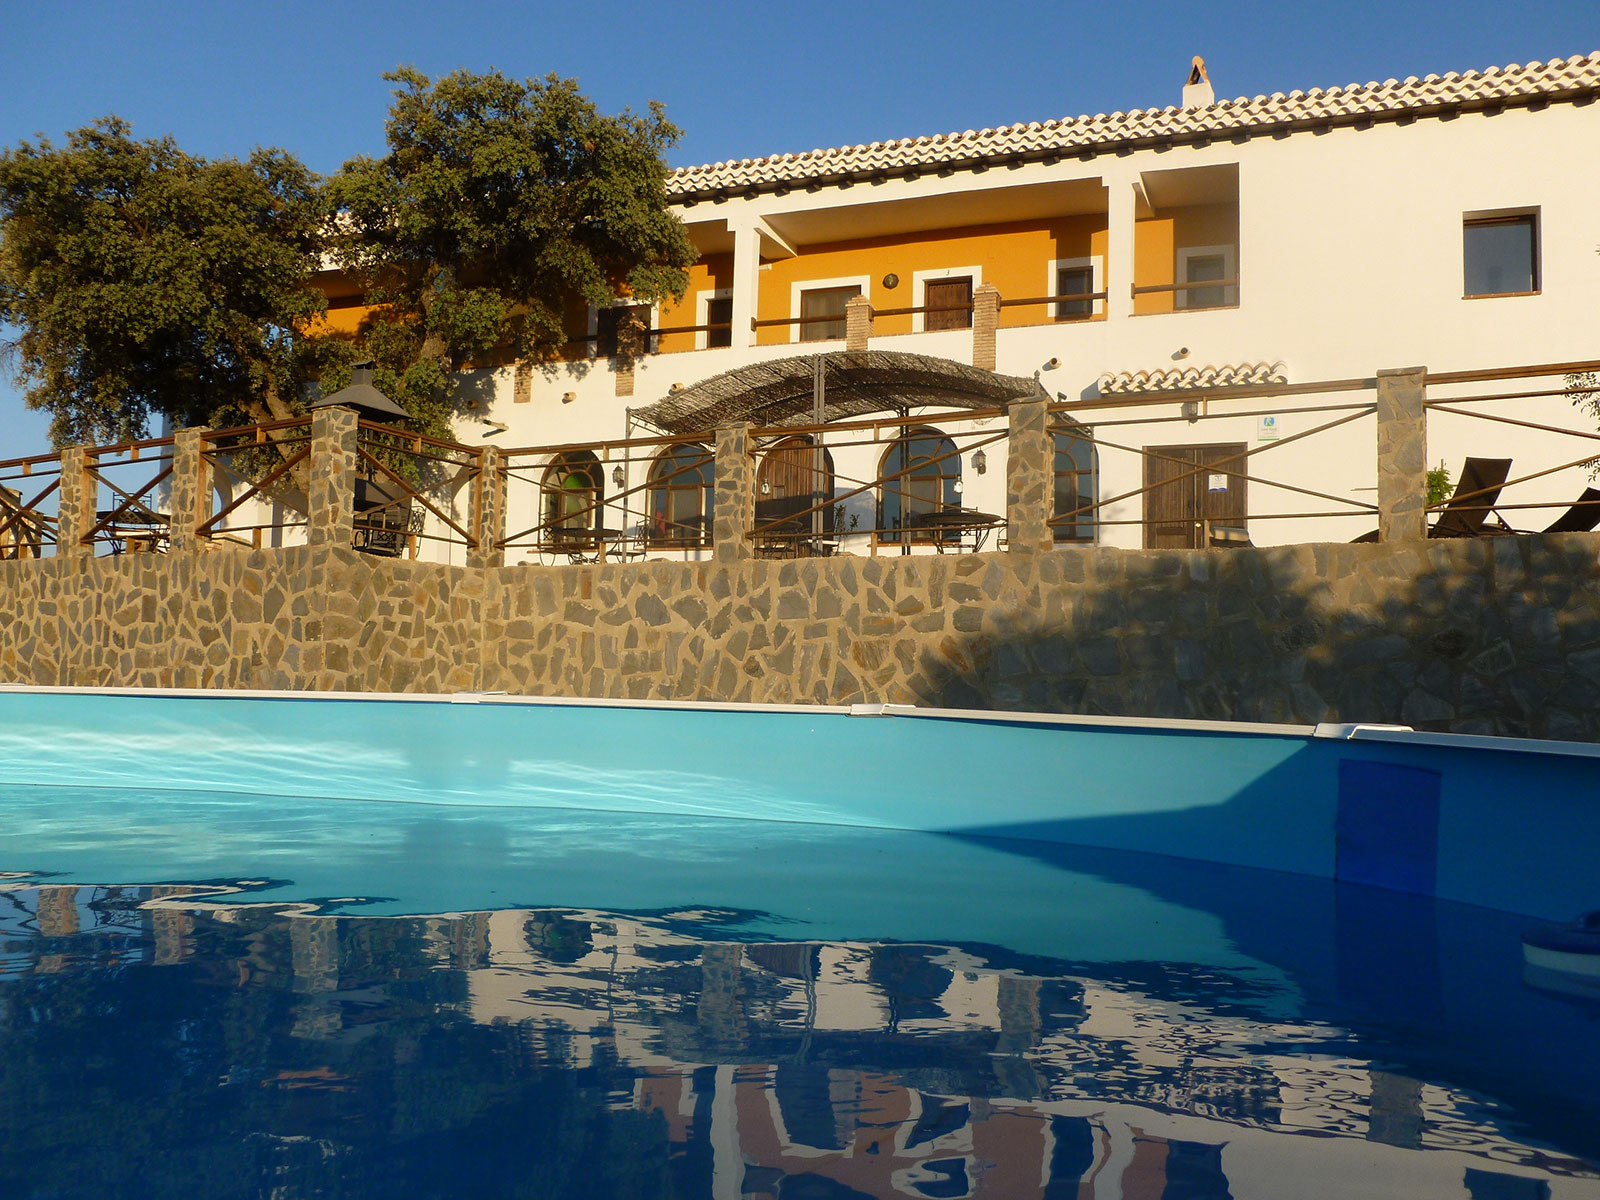 family activity holiday andalusia spain, Responsible travel